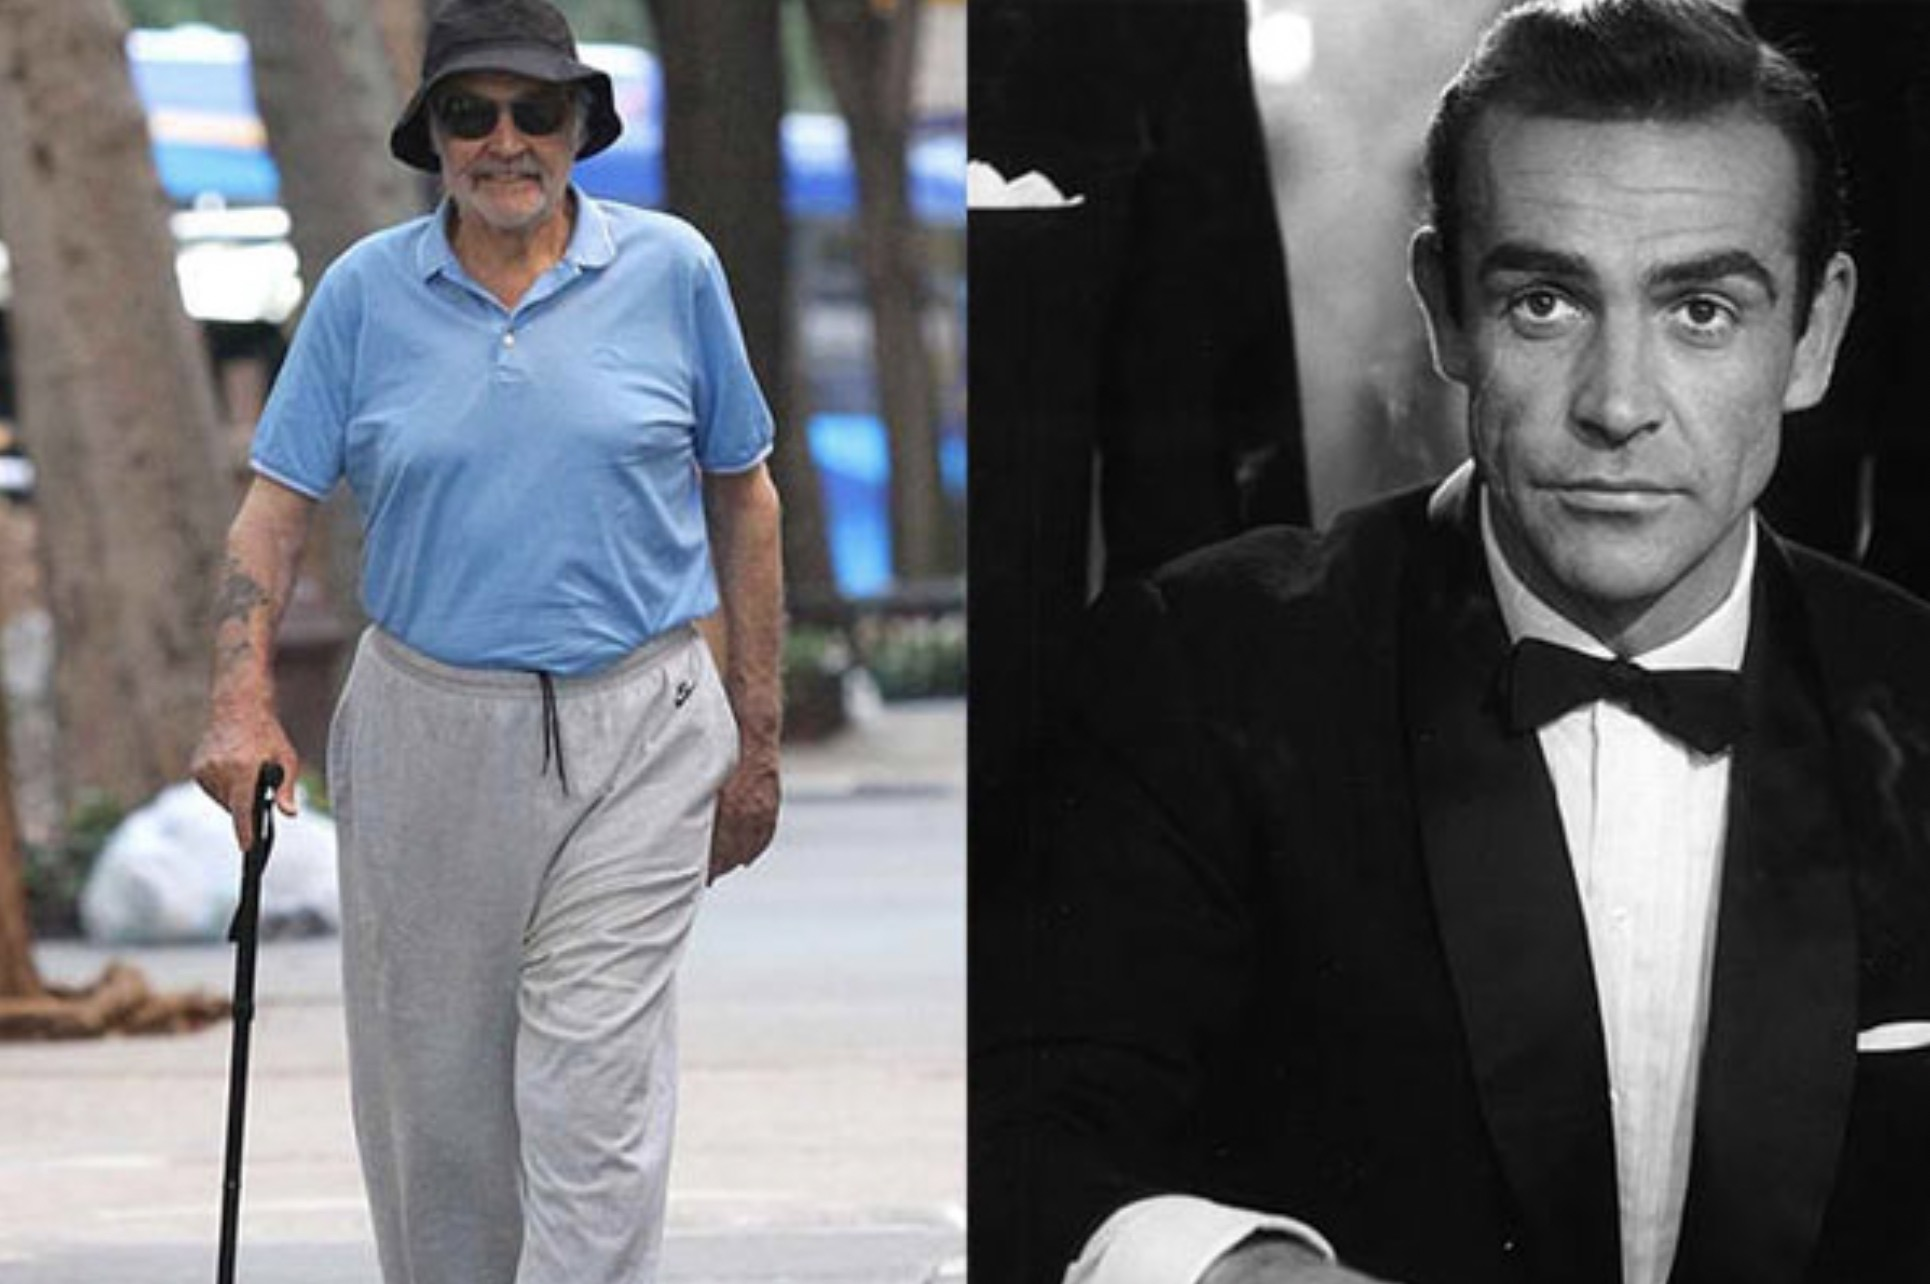 SEAN CONNERY 88 YEARS OLD